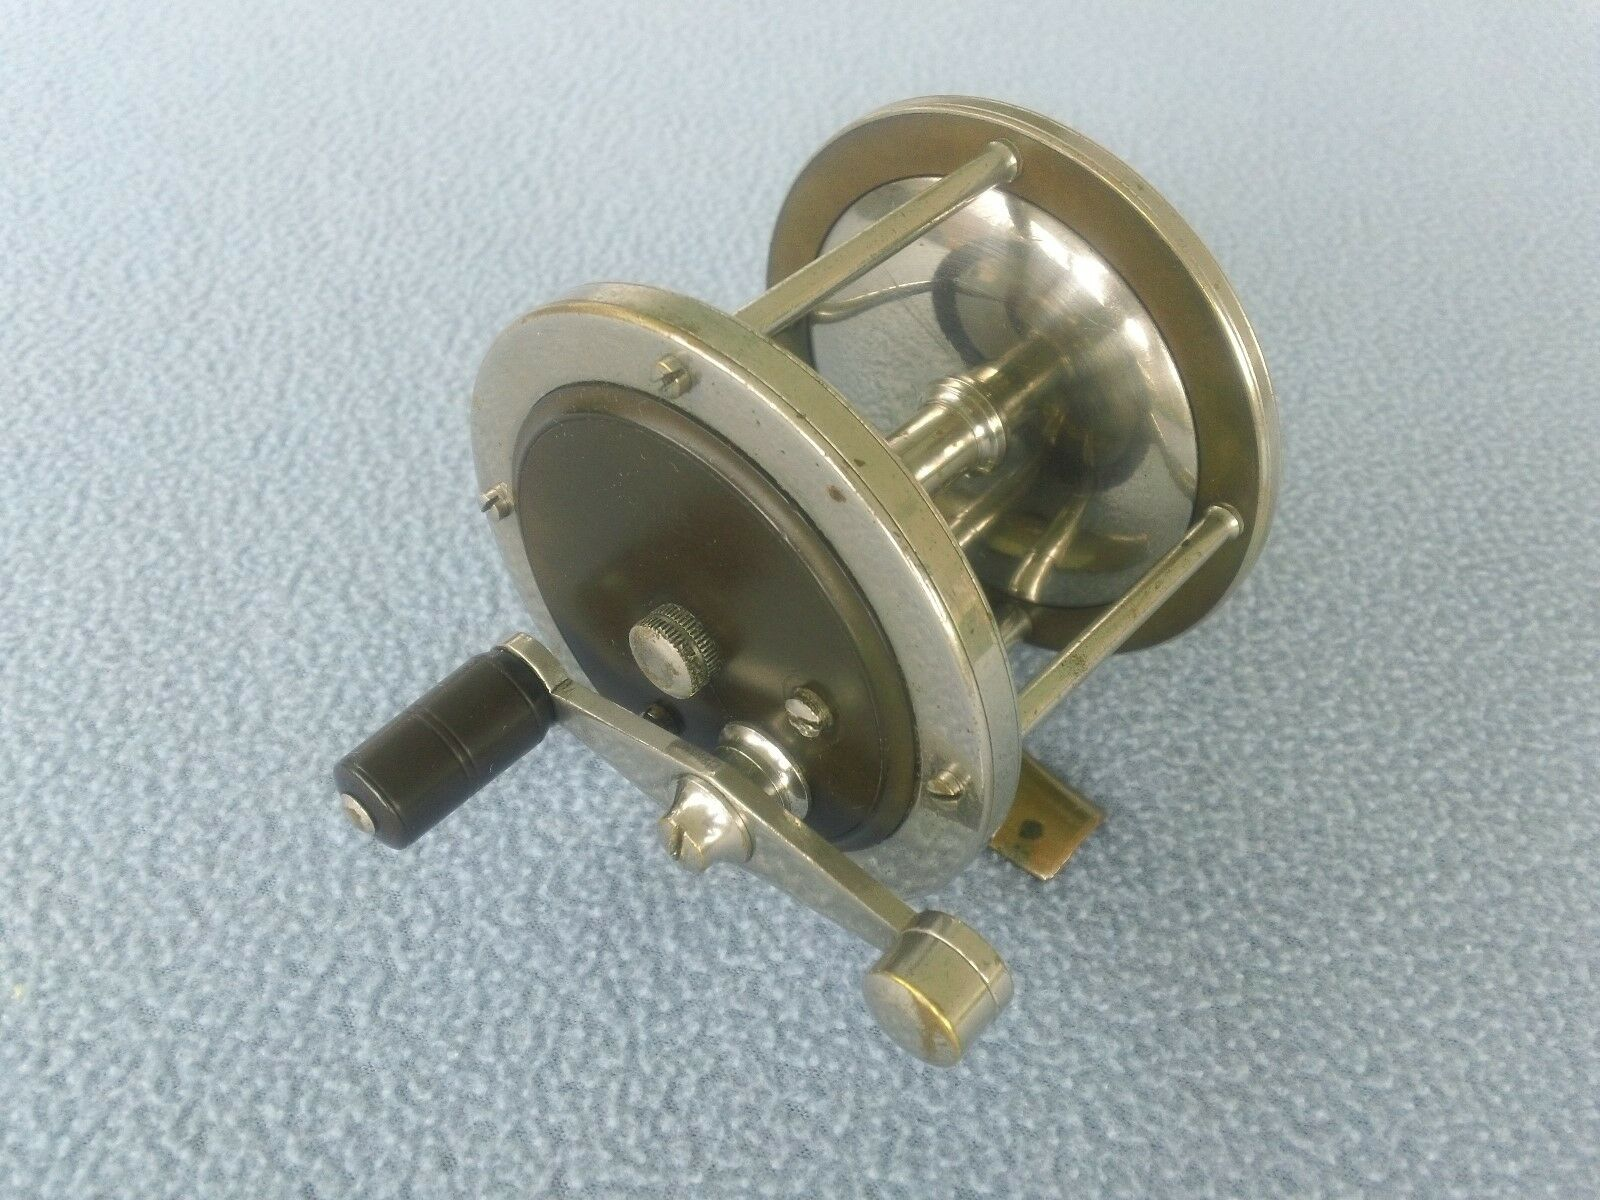 RARE VINTAGE THE KOSMIC REEL  MADE BY MONTAGUE   LOOKS GOOD & WORKS VERY WELL